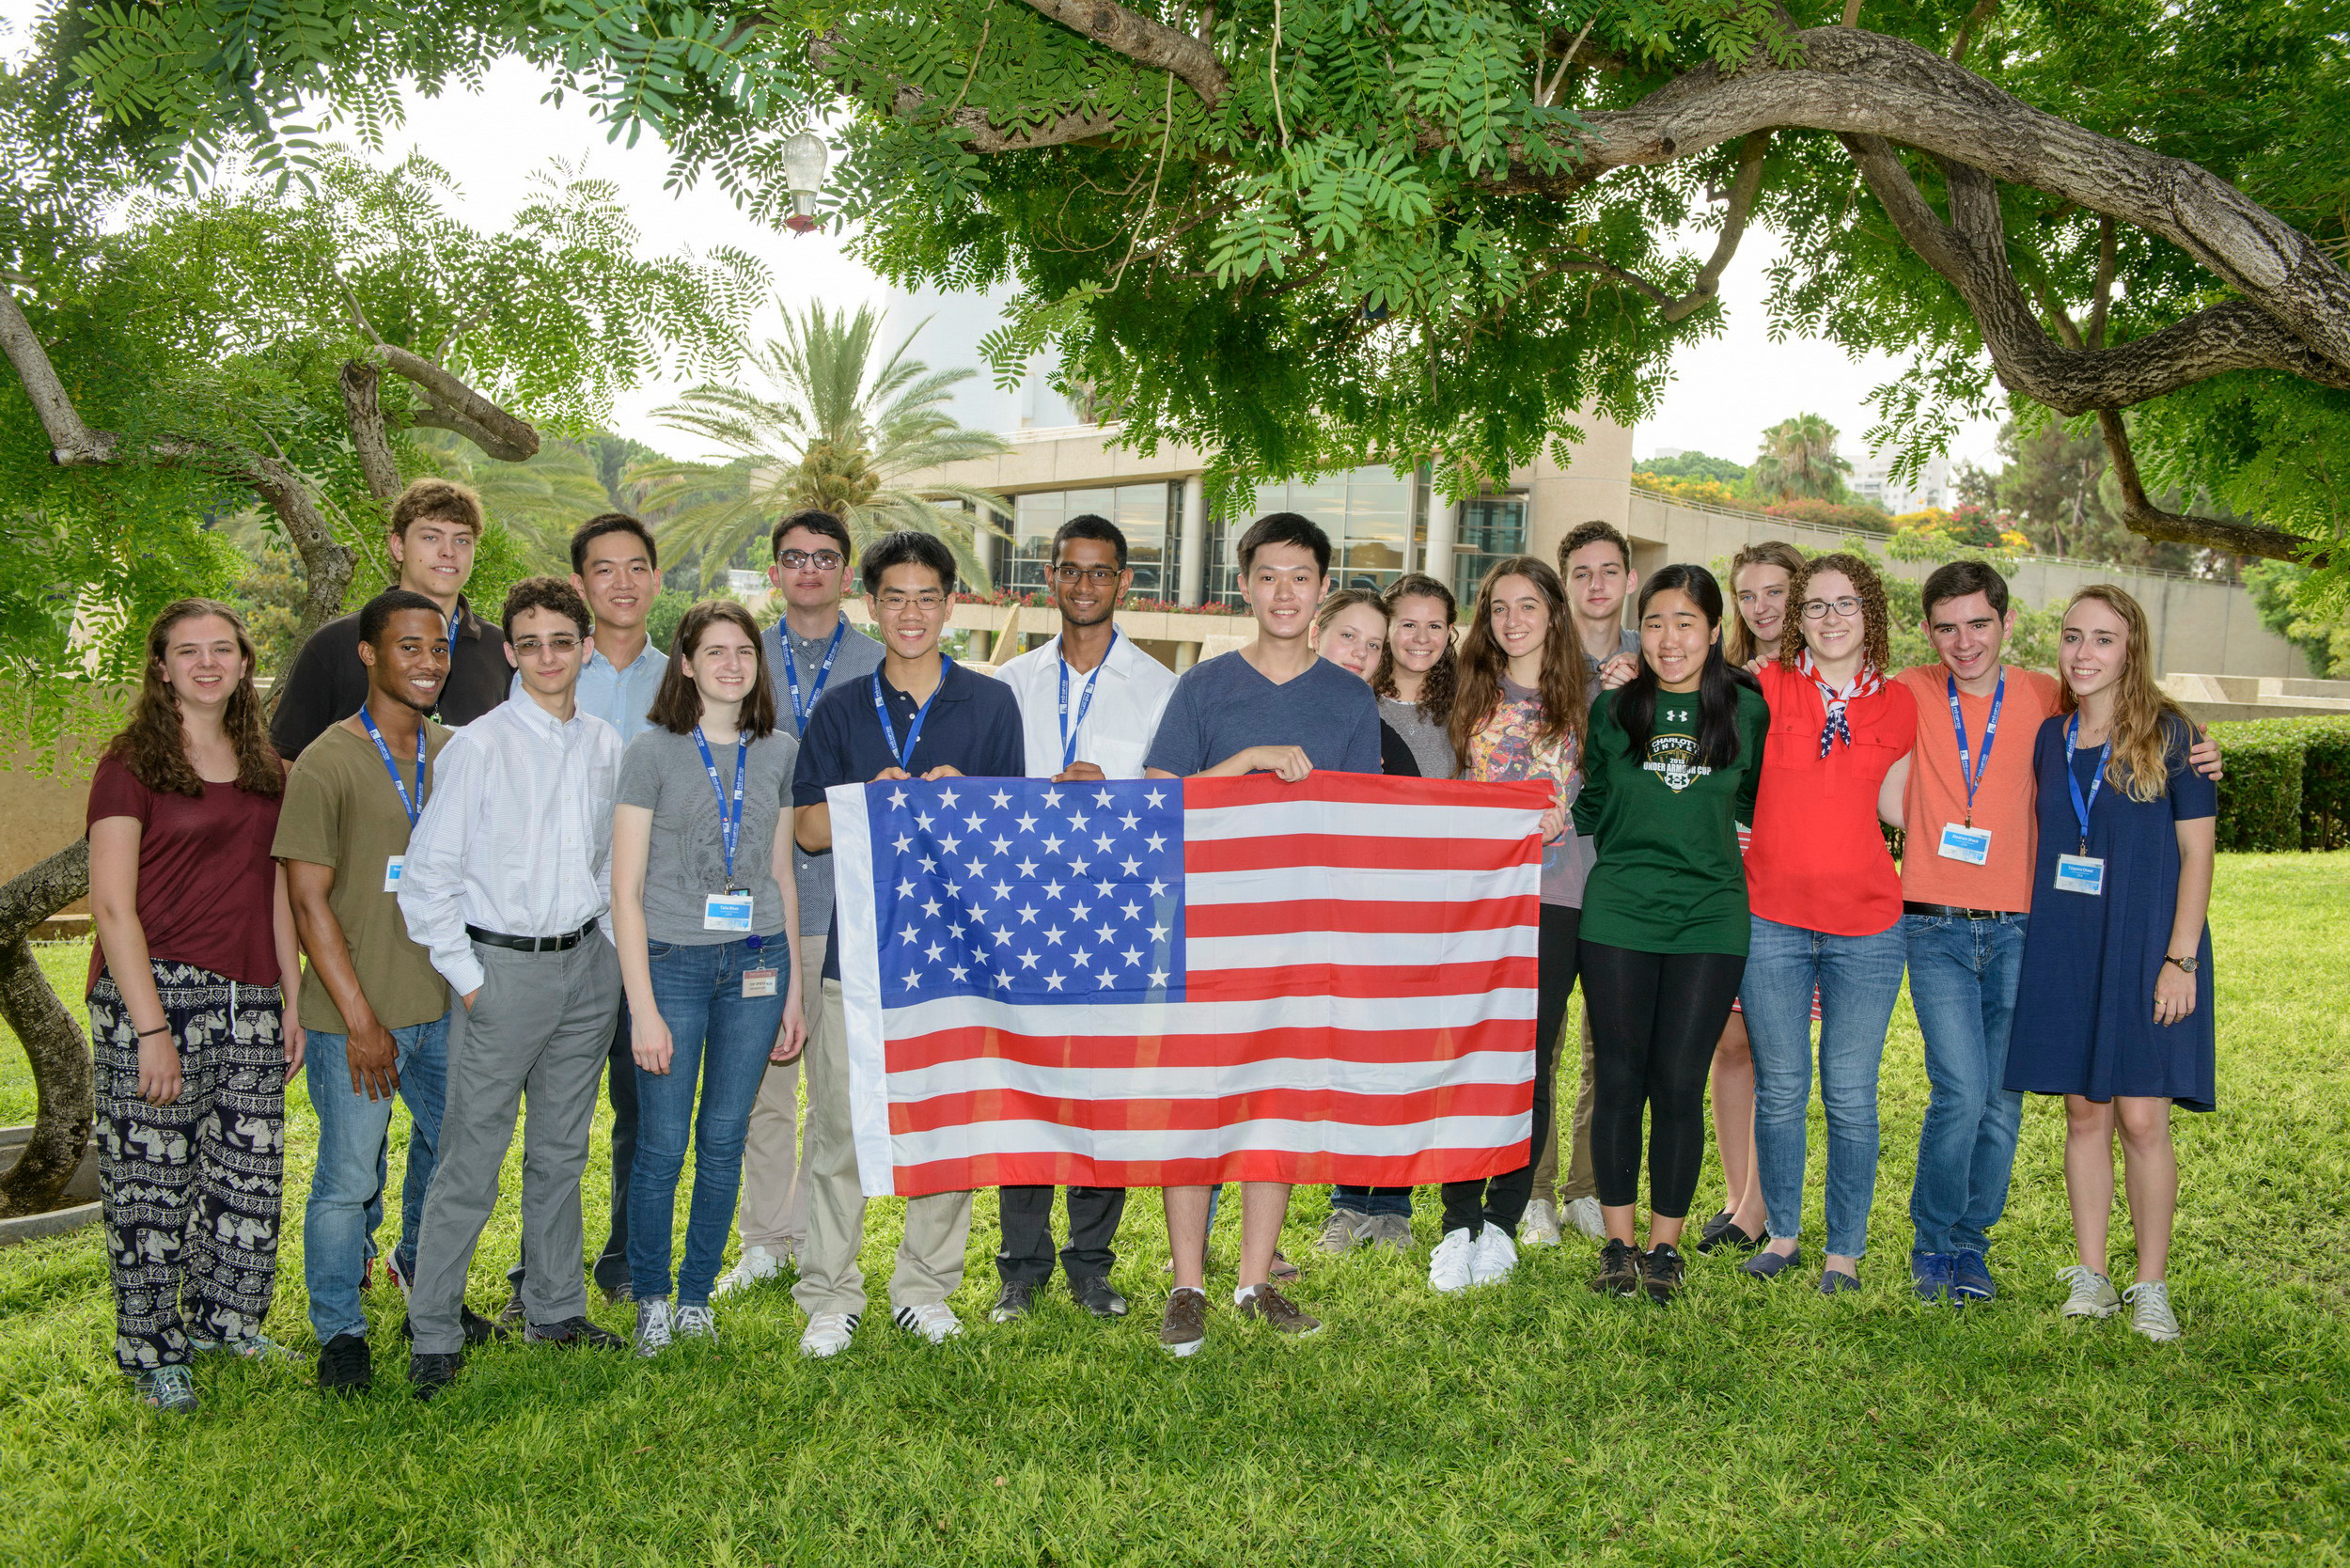 The 19 American students who took part in the Weizmann Institute of Science summer program. Tzippora Chwat is at far right.